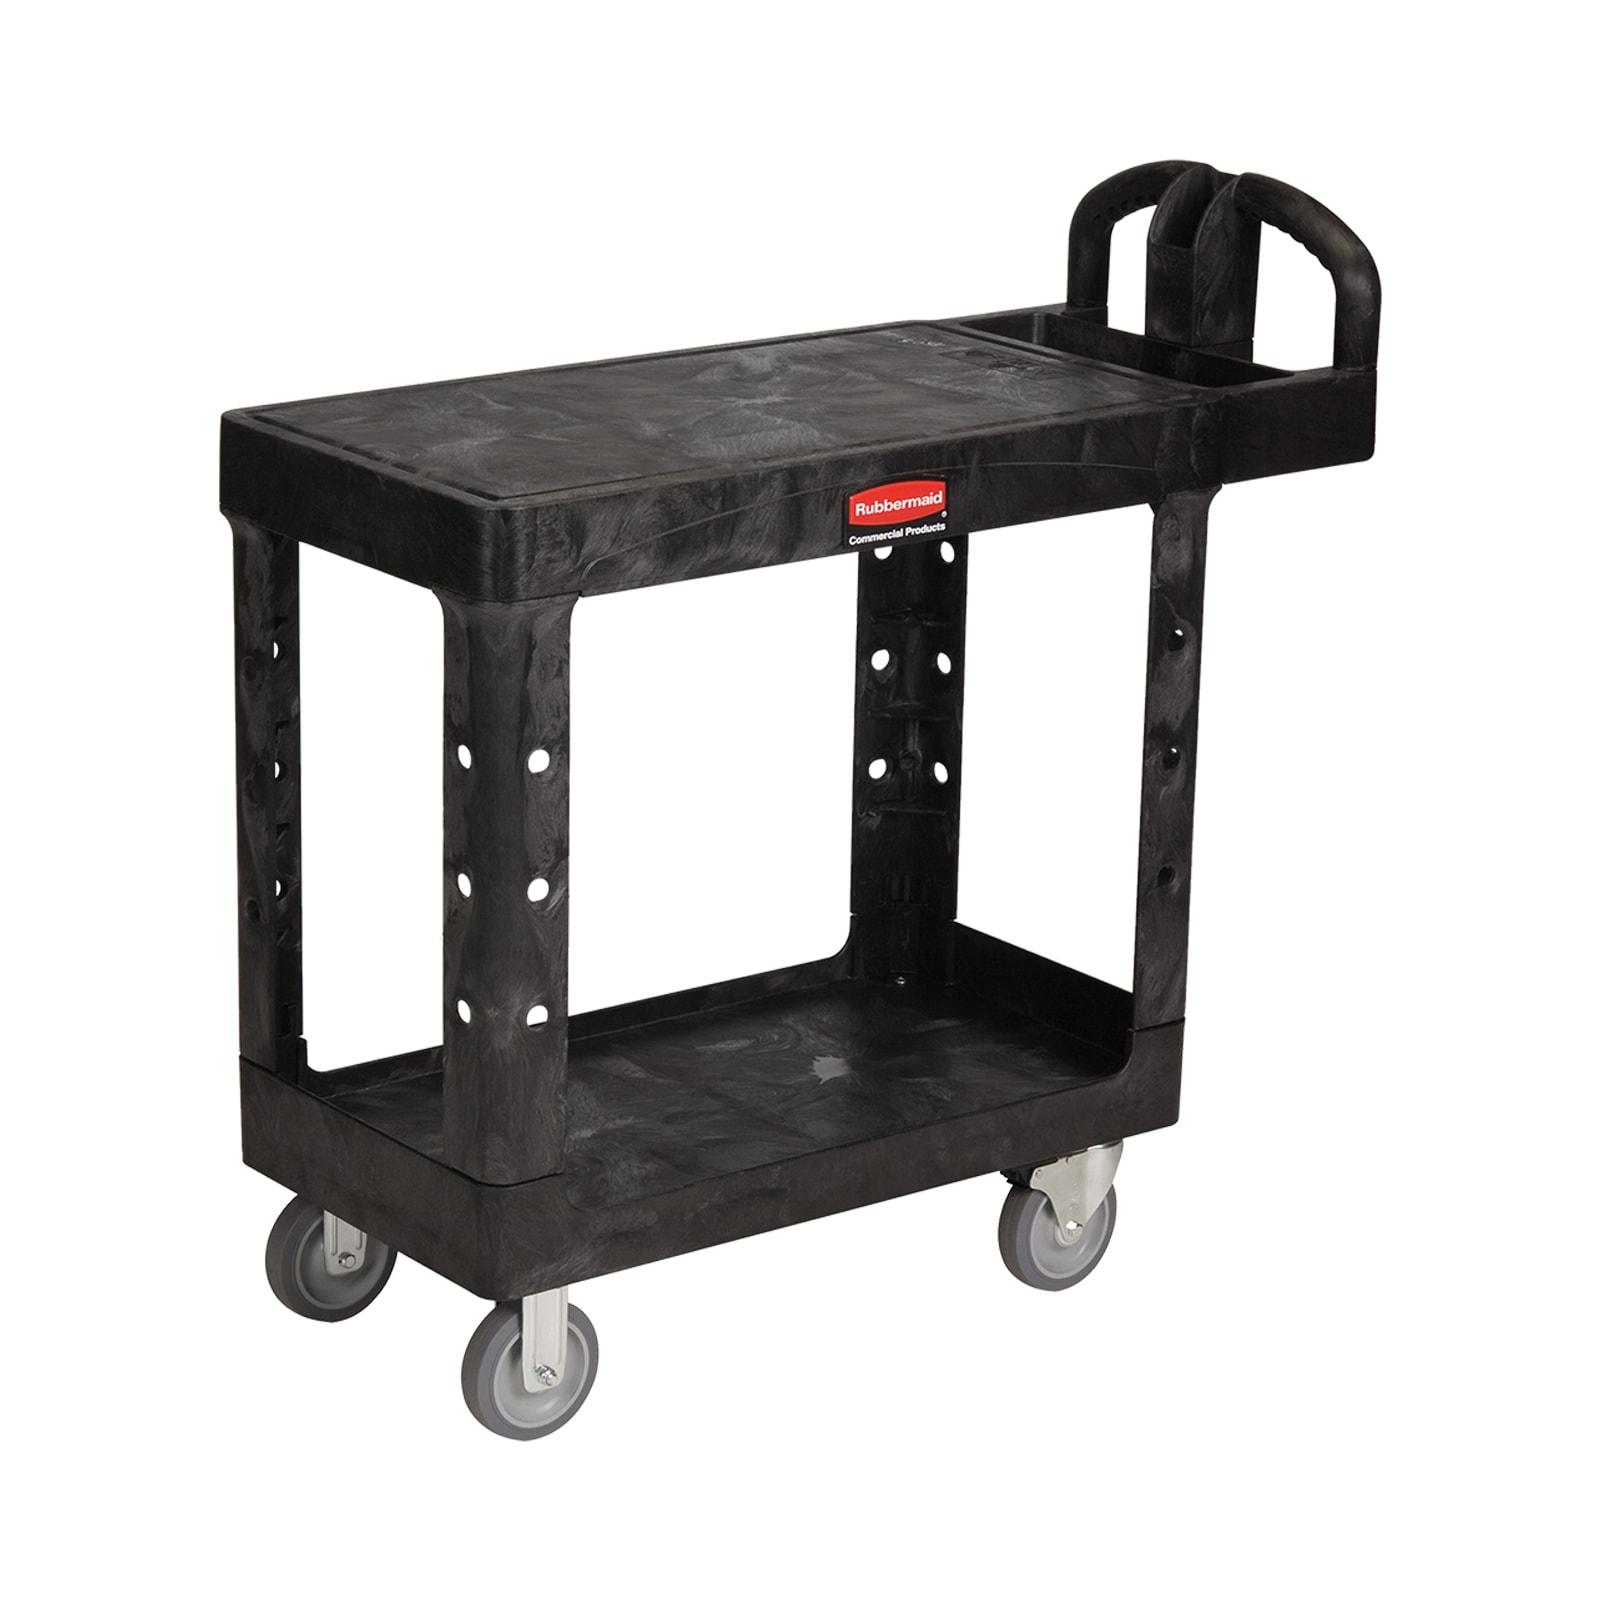 Rubbermaid FG450500BLA 2-Level Polymer Utility Cart w/ 500-lb Capacity, Flat Ledges